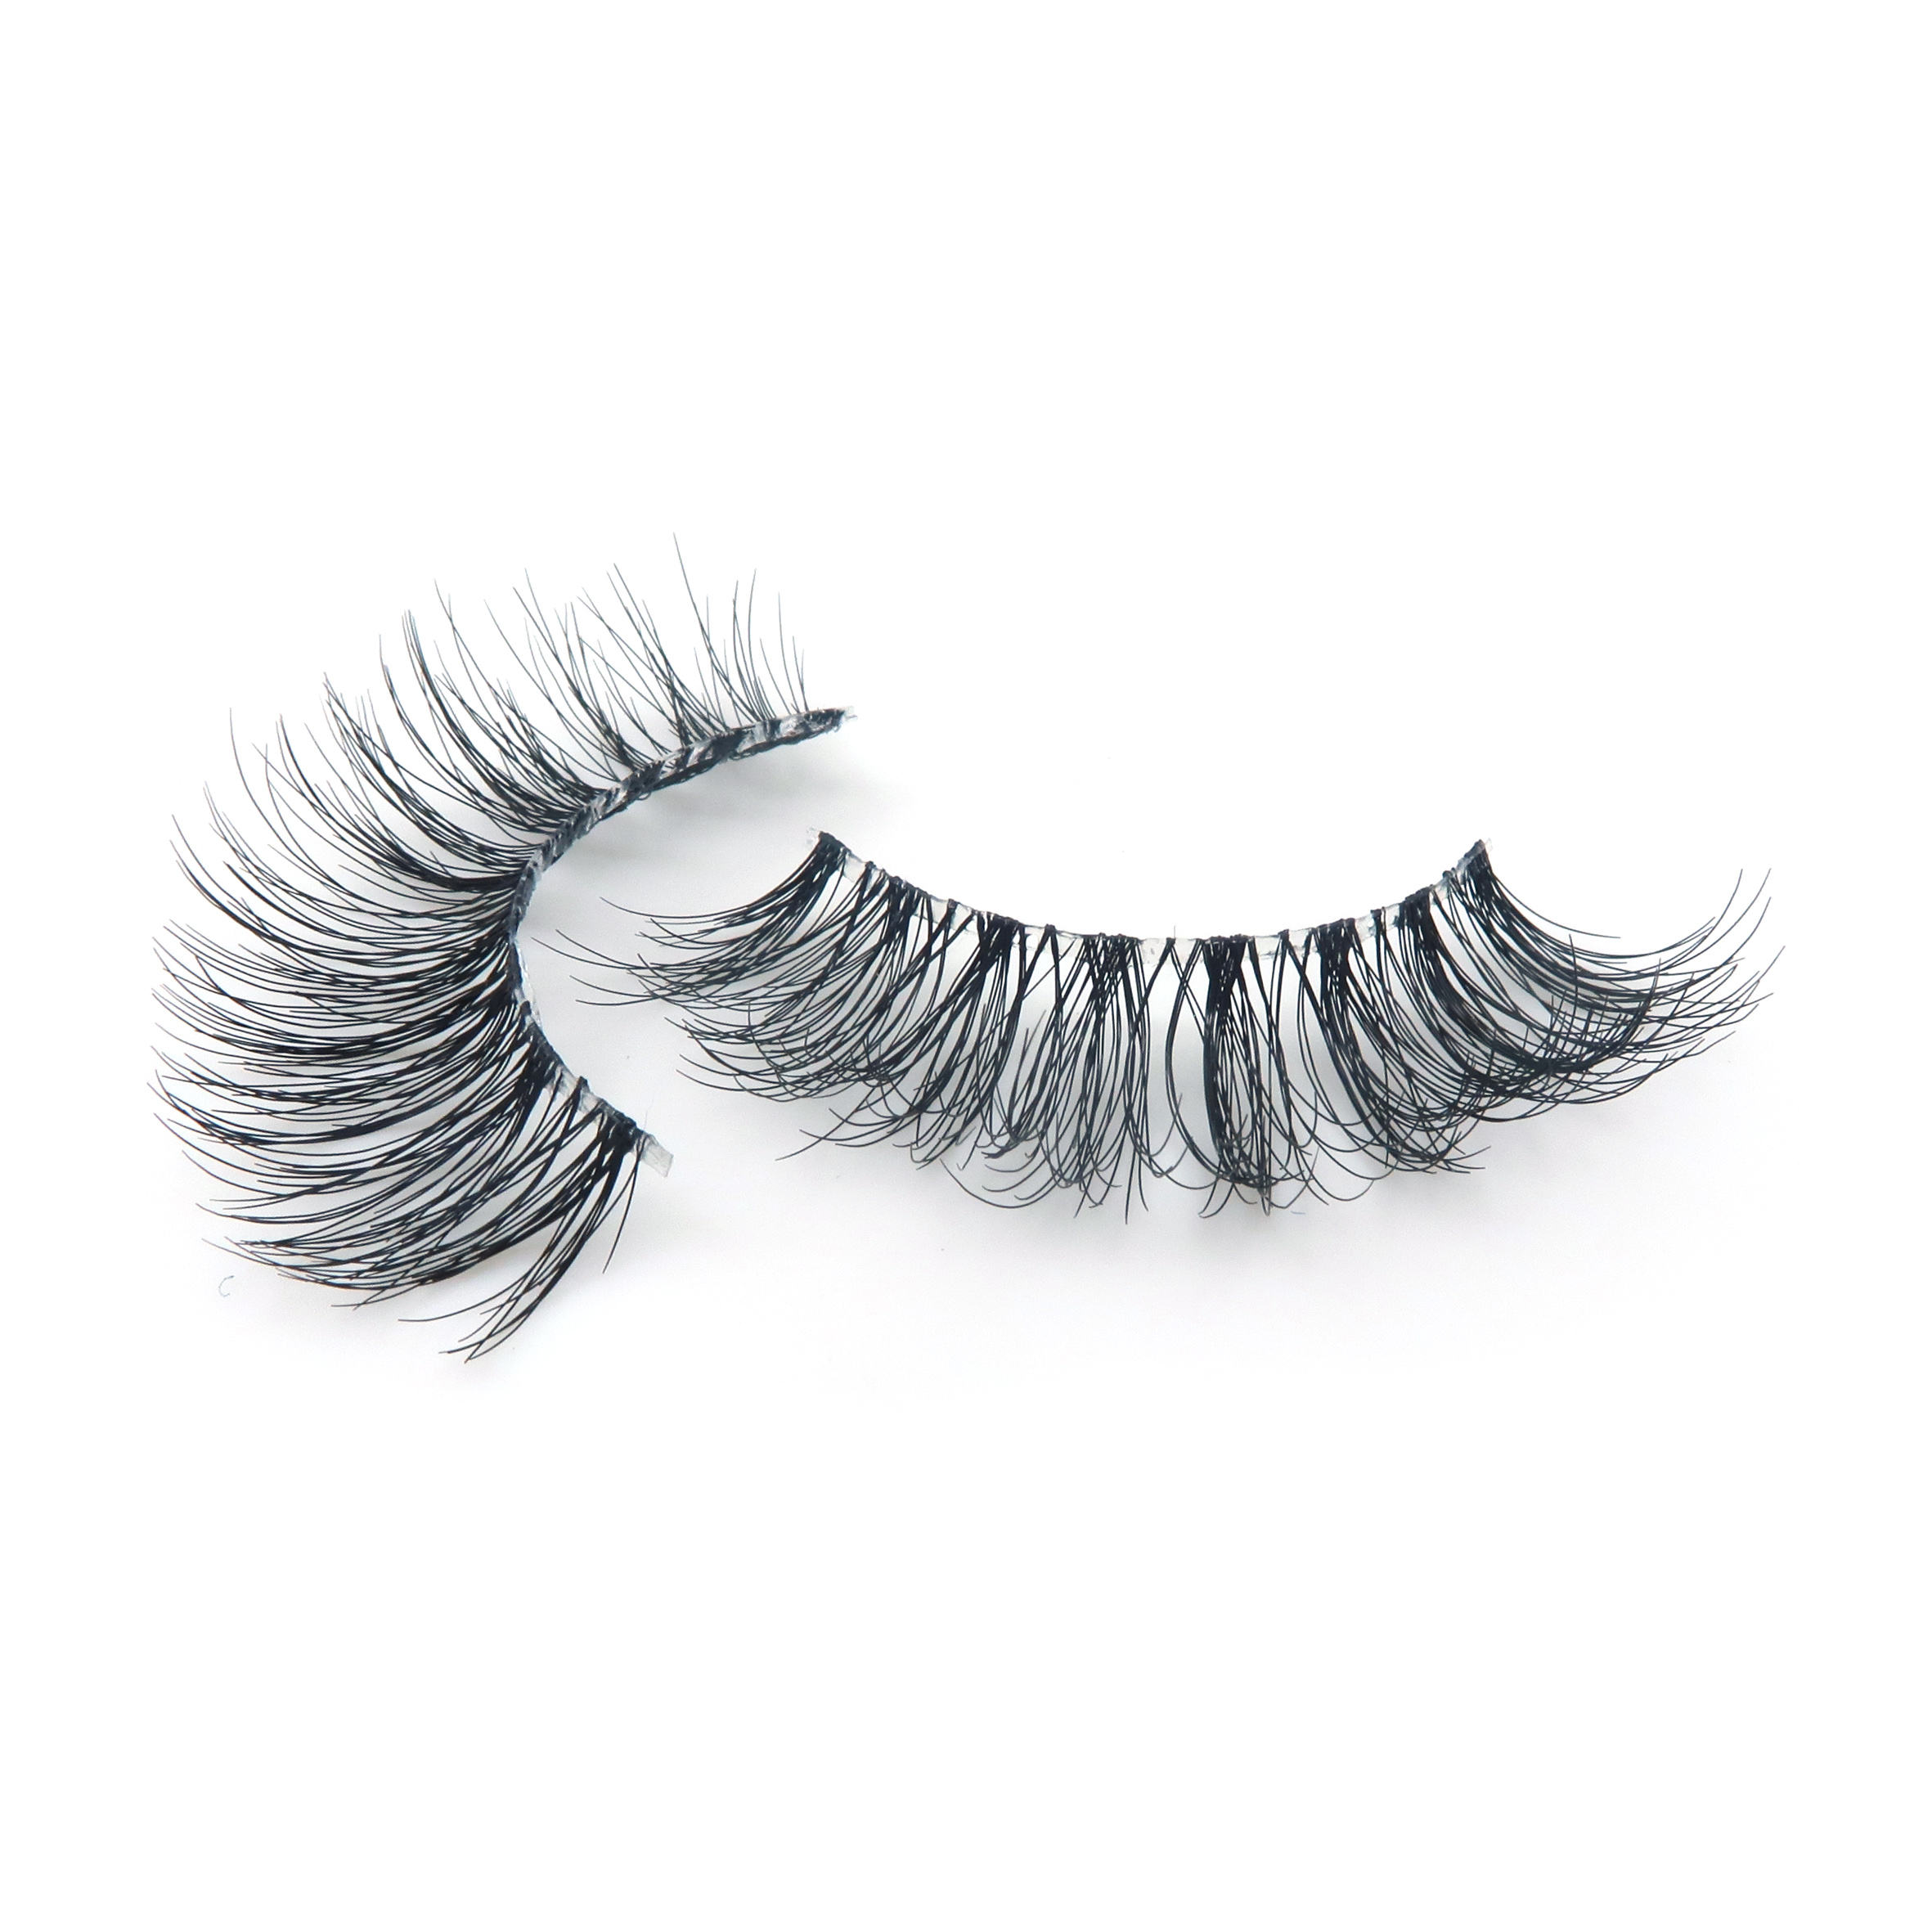 Worldbeauty Private Label Faux Mink Eyelashes Single Eyelashes Free Sample Eyelashes Hand Made 3D Effect OEM :CUSTOMER LOGO Curl